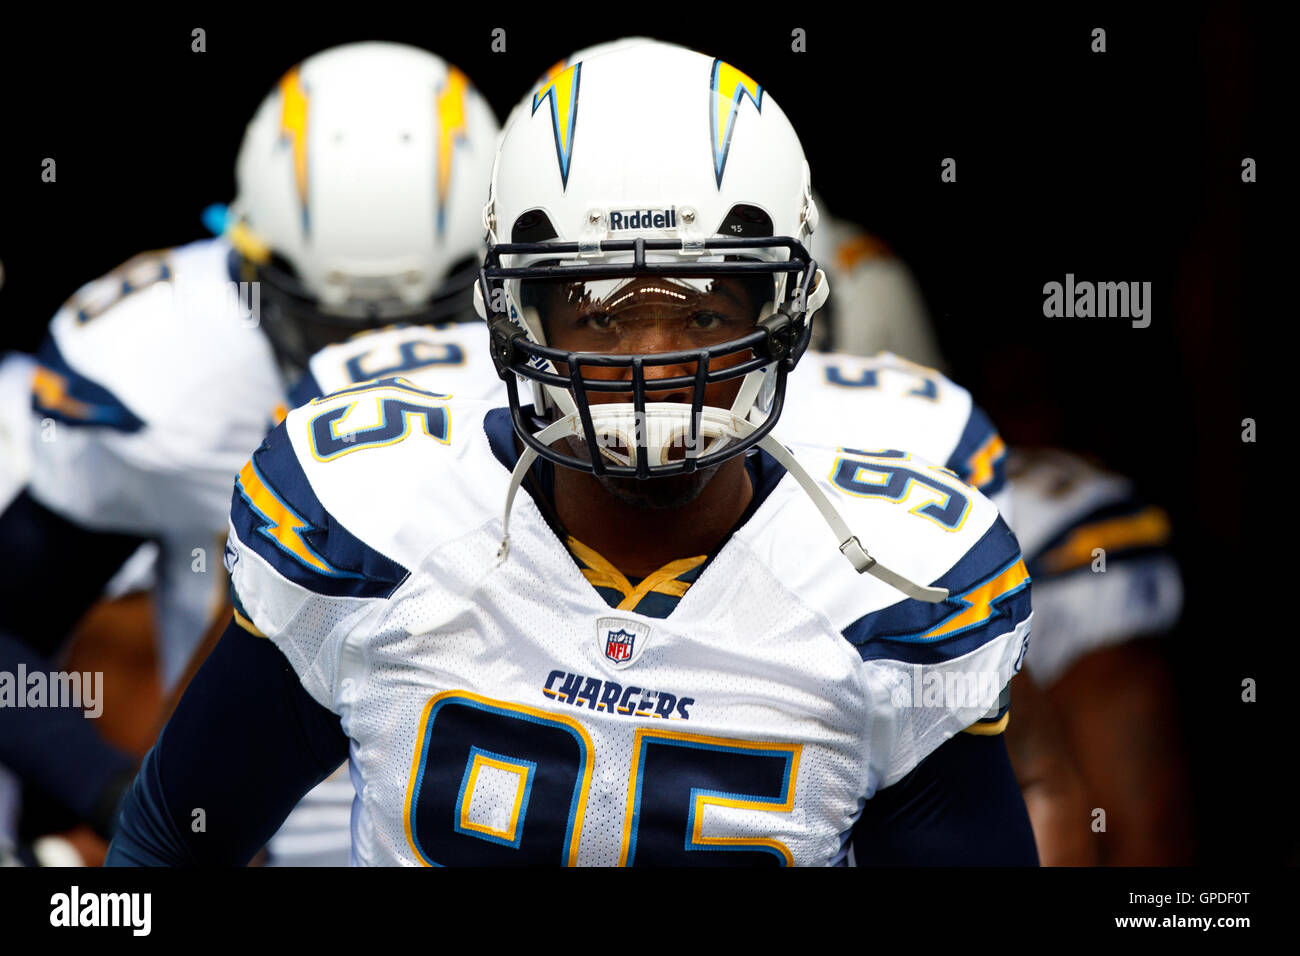 September 26 2010 Seattle WA USA San Diego Chargers Linebacker Shaun Phillips 95 Enters The Field Before Game Against Seahawks At